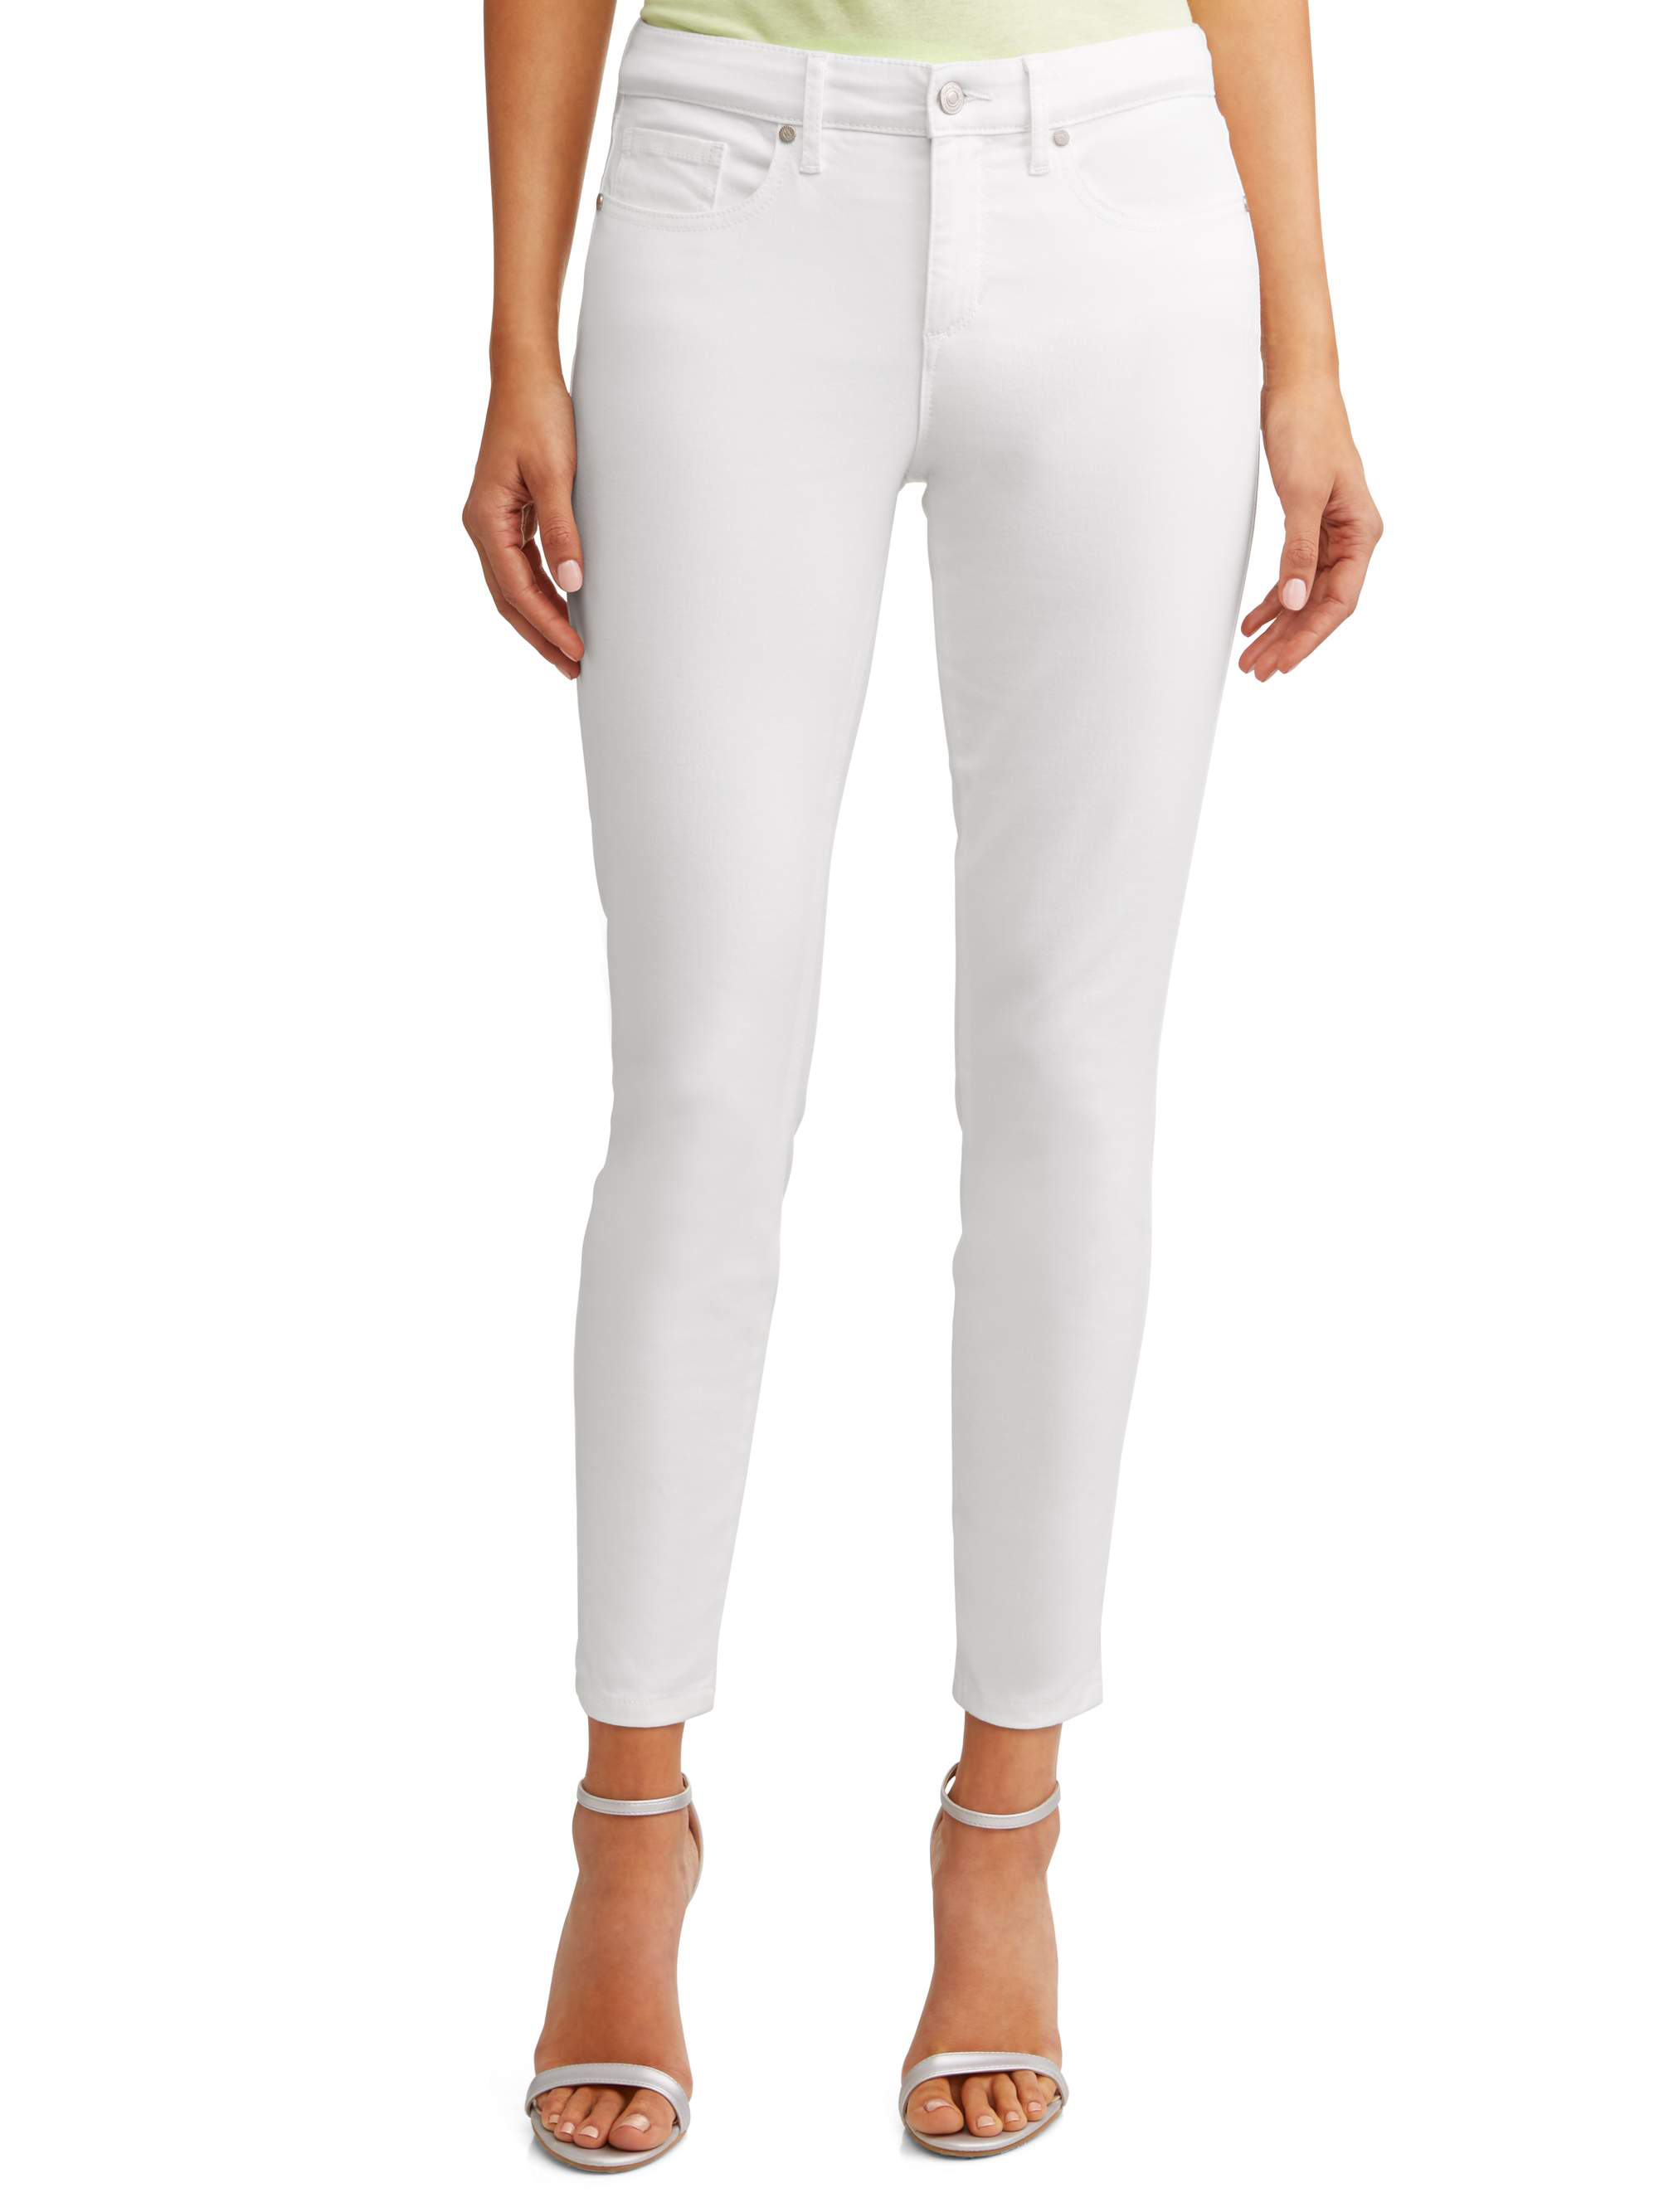 Sofía Skinny Mid Rise Stretch Ankle Twill Jean Women's (White)